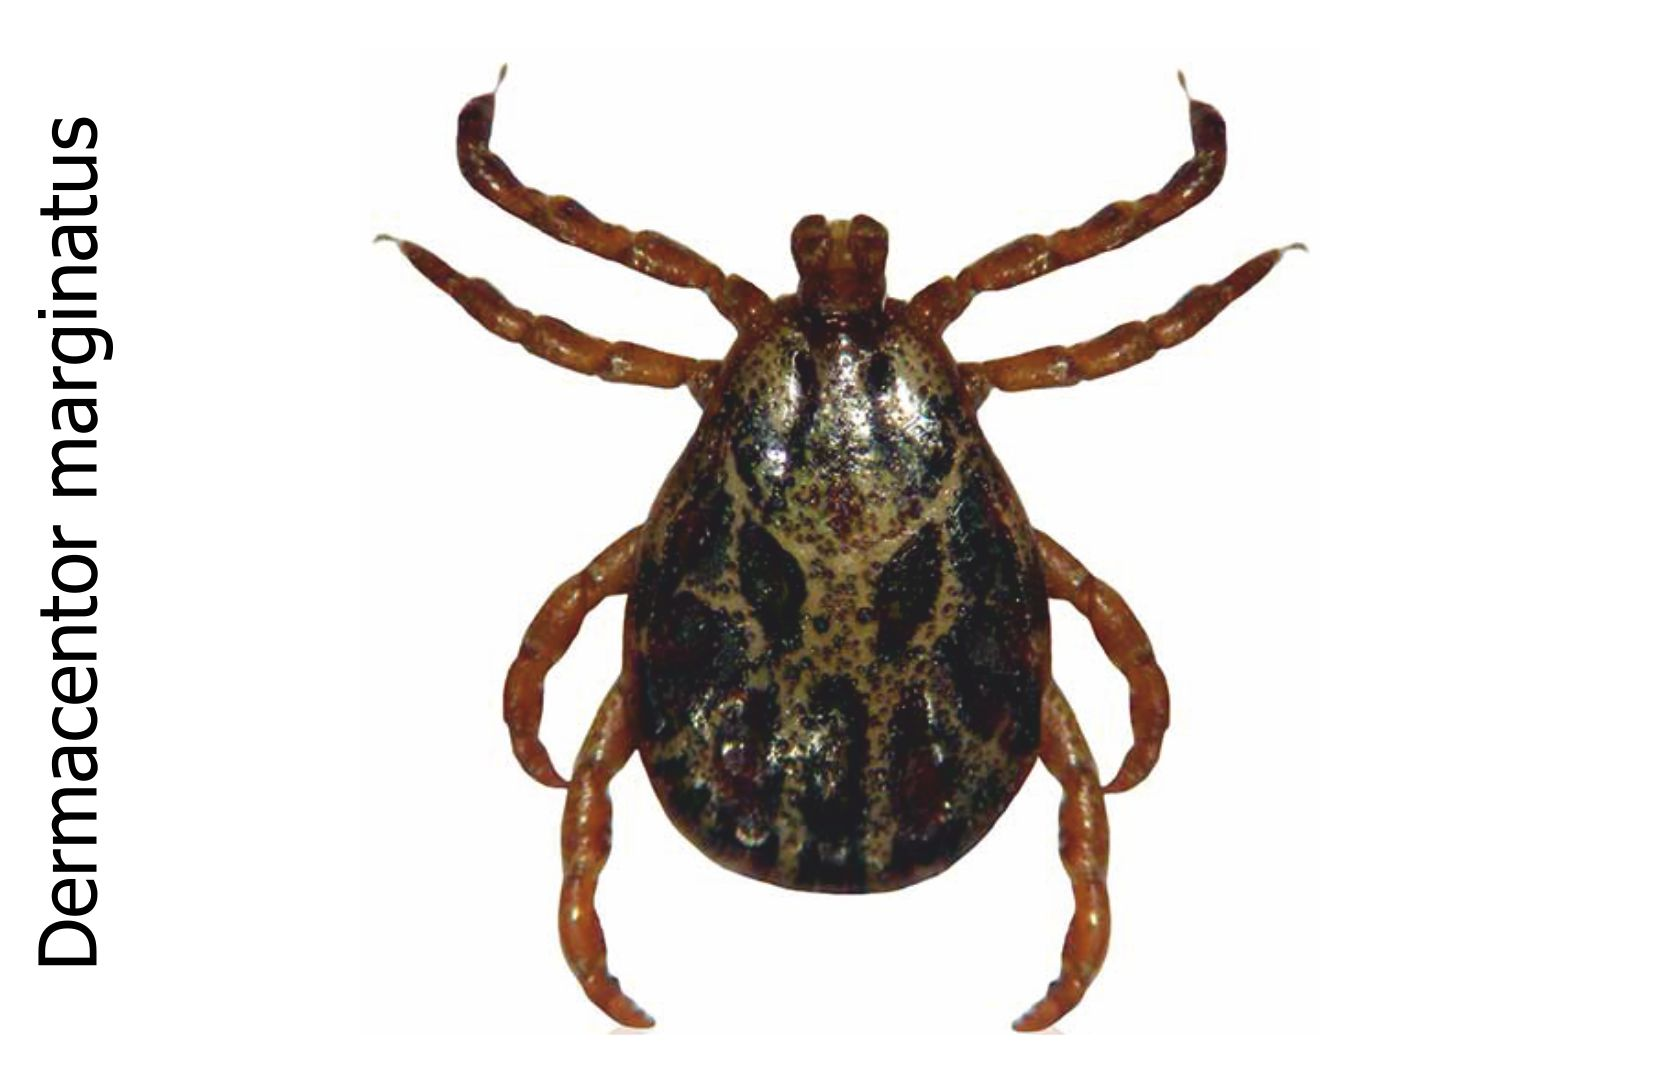 ornate sheep tick (Dermacentor marginatus)